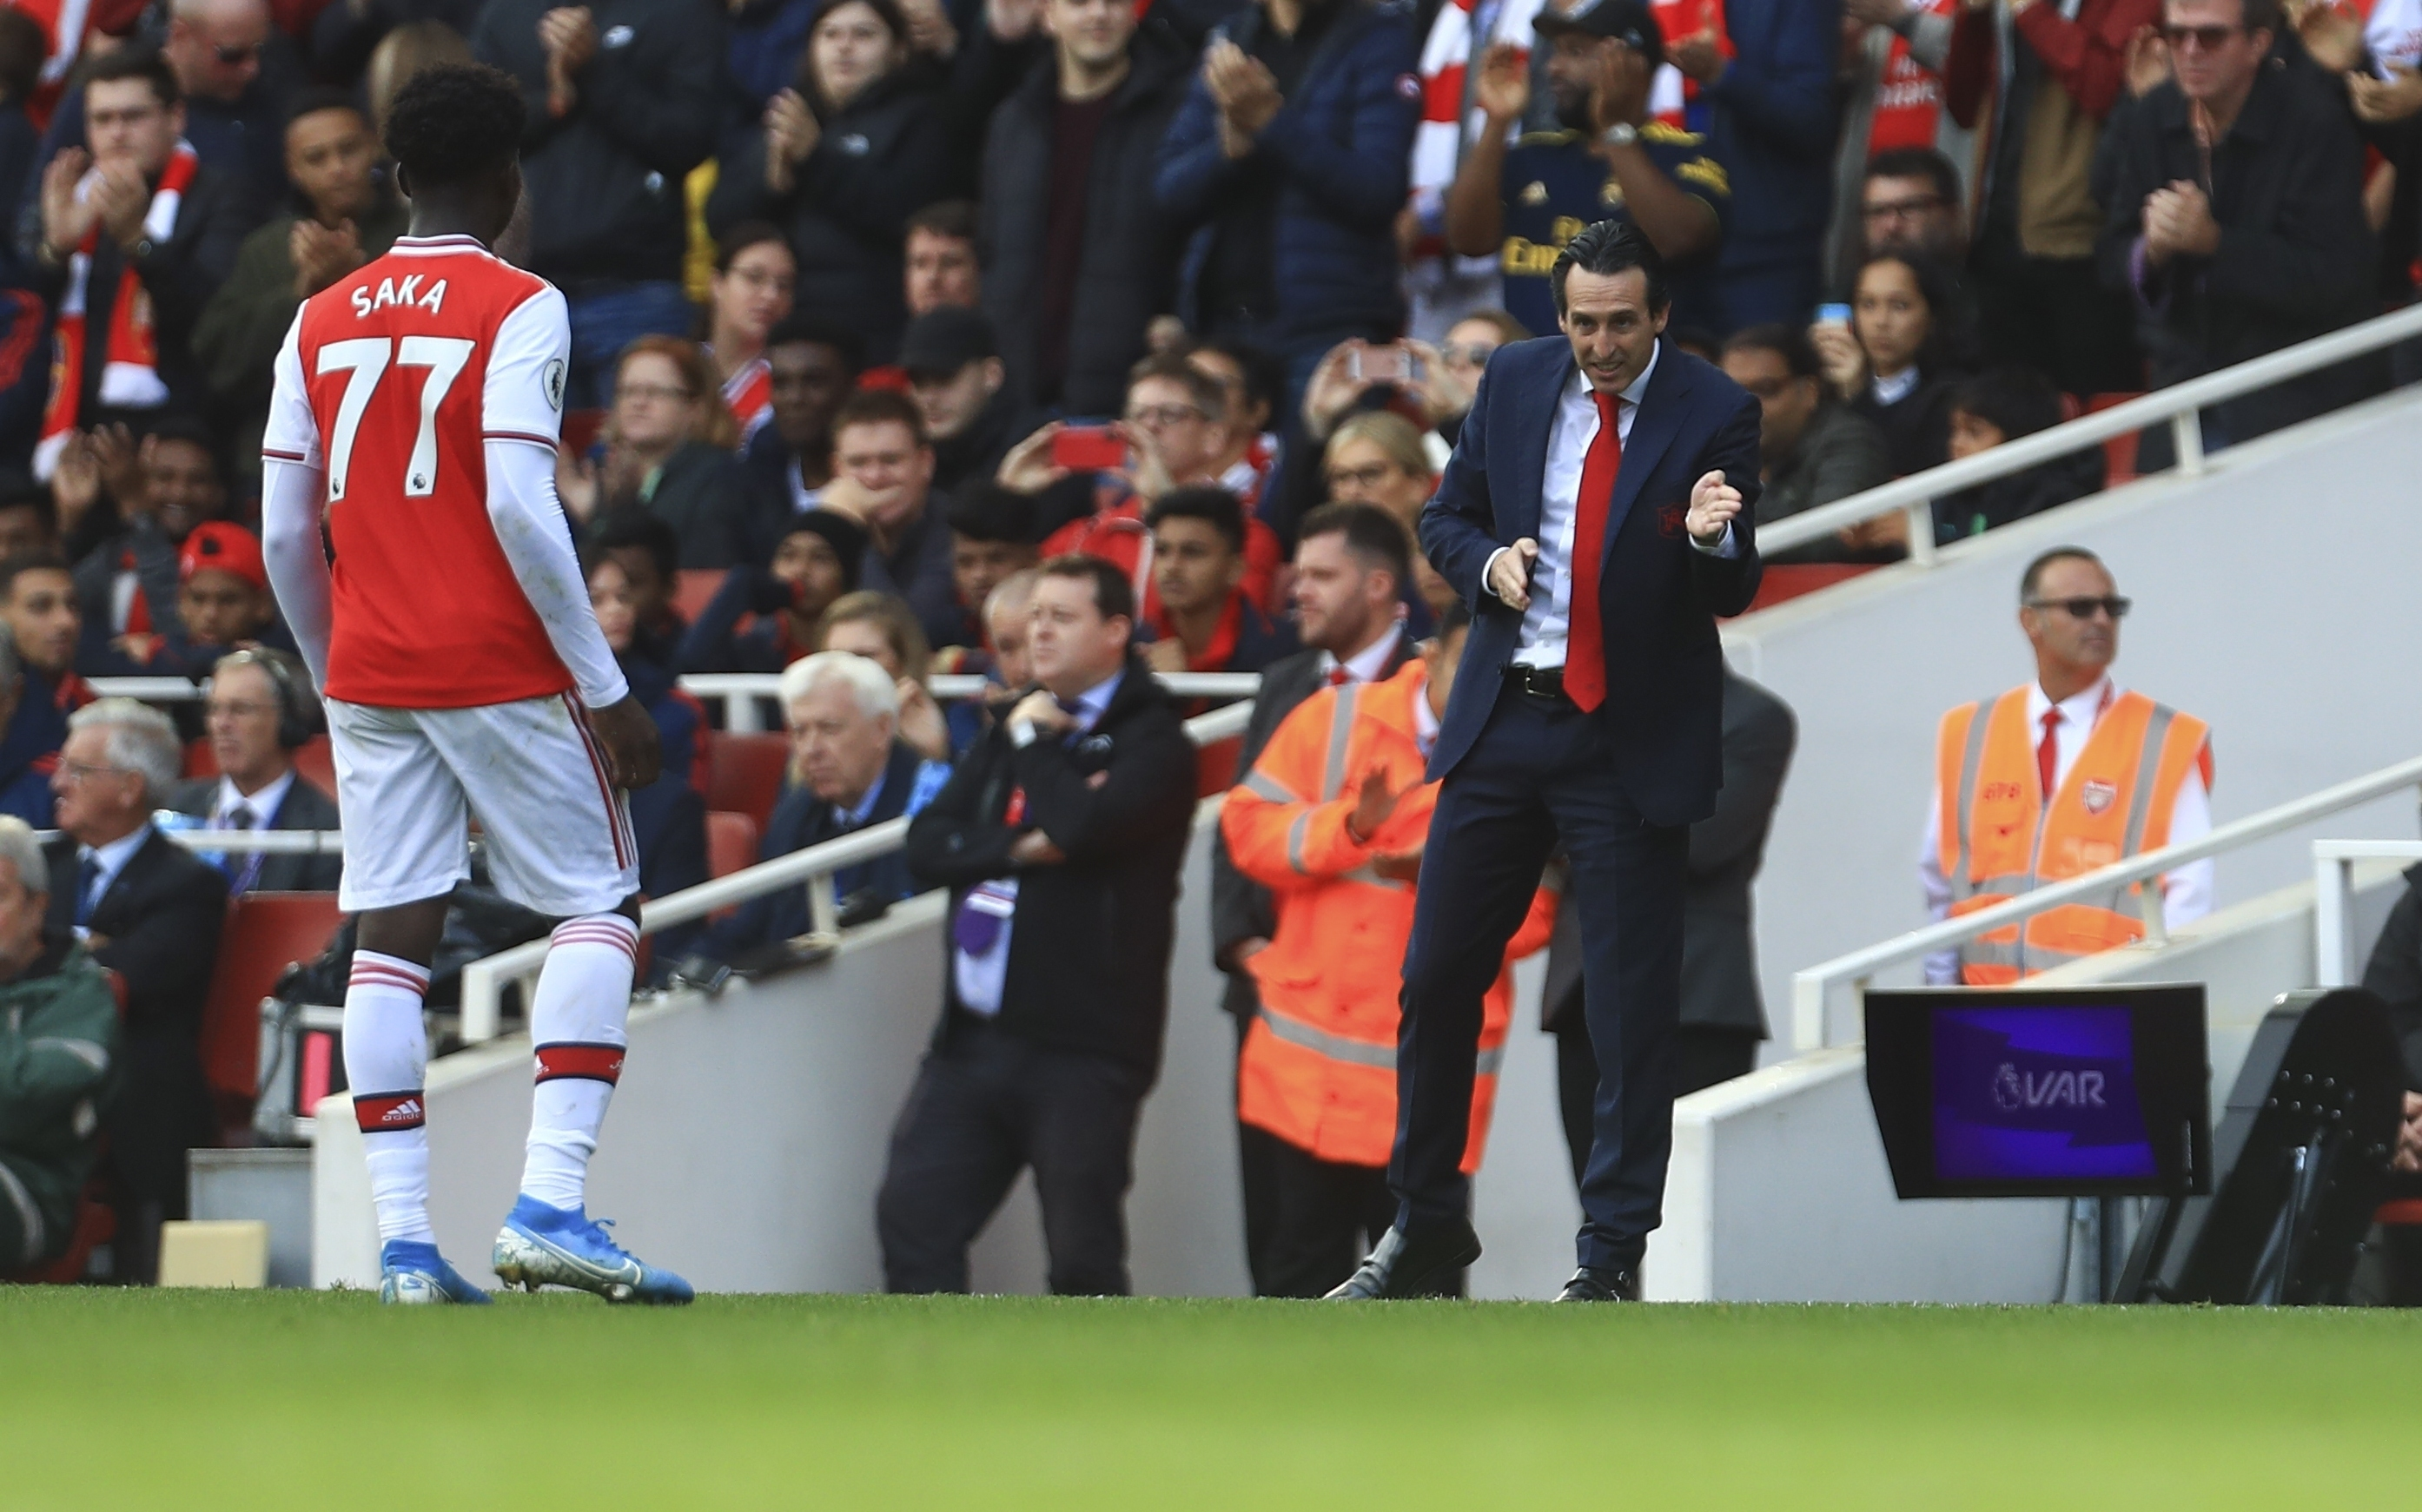 Arsenal S 18 Year Old Hotshot Bukayo Saka Is Still Not Allowed In First Team Dressing Room At Training Ground Sportbible